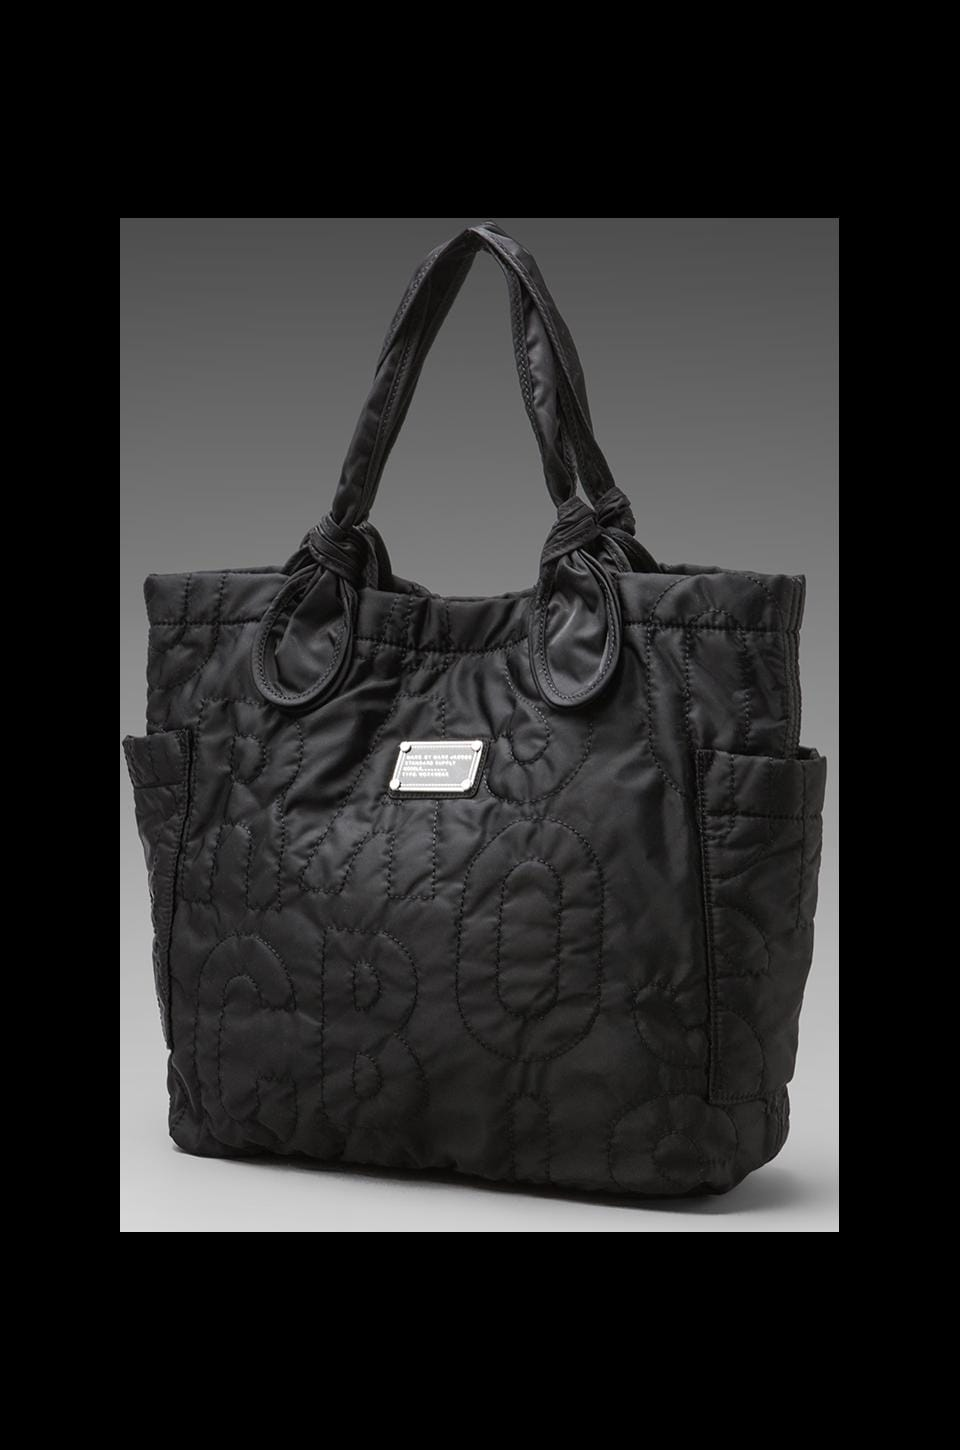 Marc by Marc Jacobs Pretty Nylon Medium Tote in Black